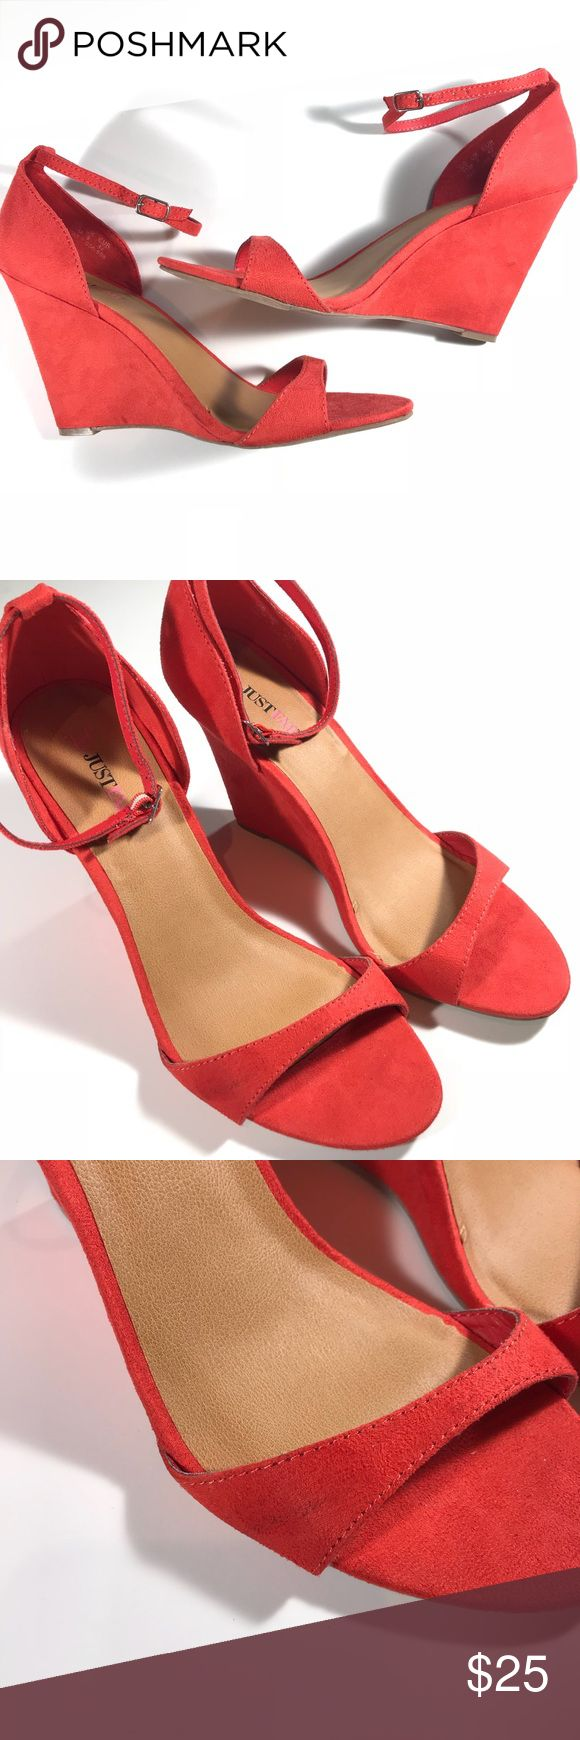 Just Fab • Suede Coral Wedge Sandals Just Fab Great Used 11M Light stain as shown in image, untreated. Should be able to remove with alcohol and a toothbrush as the wedges are suede. JustFab Shoes Wedges